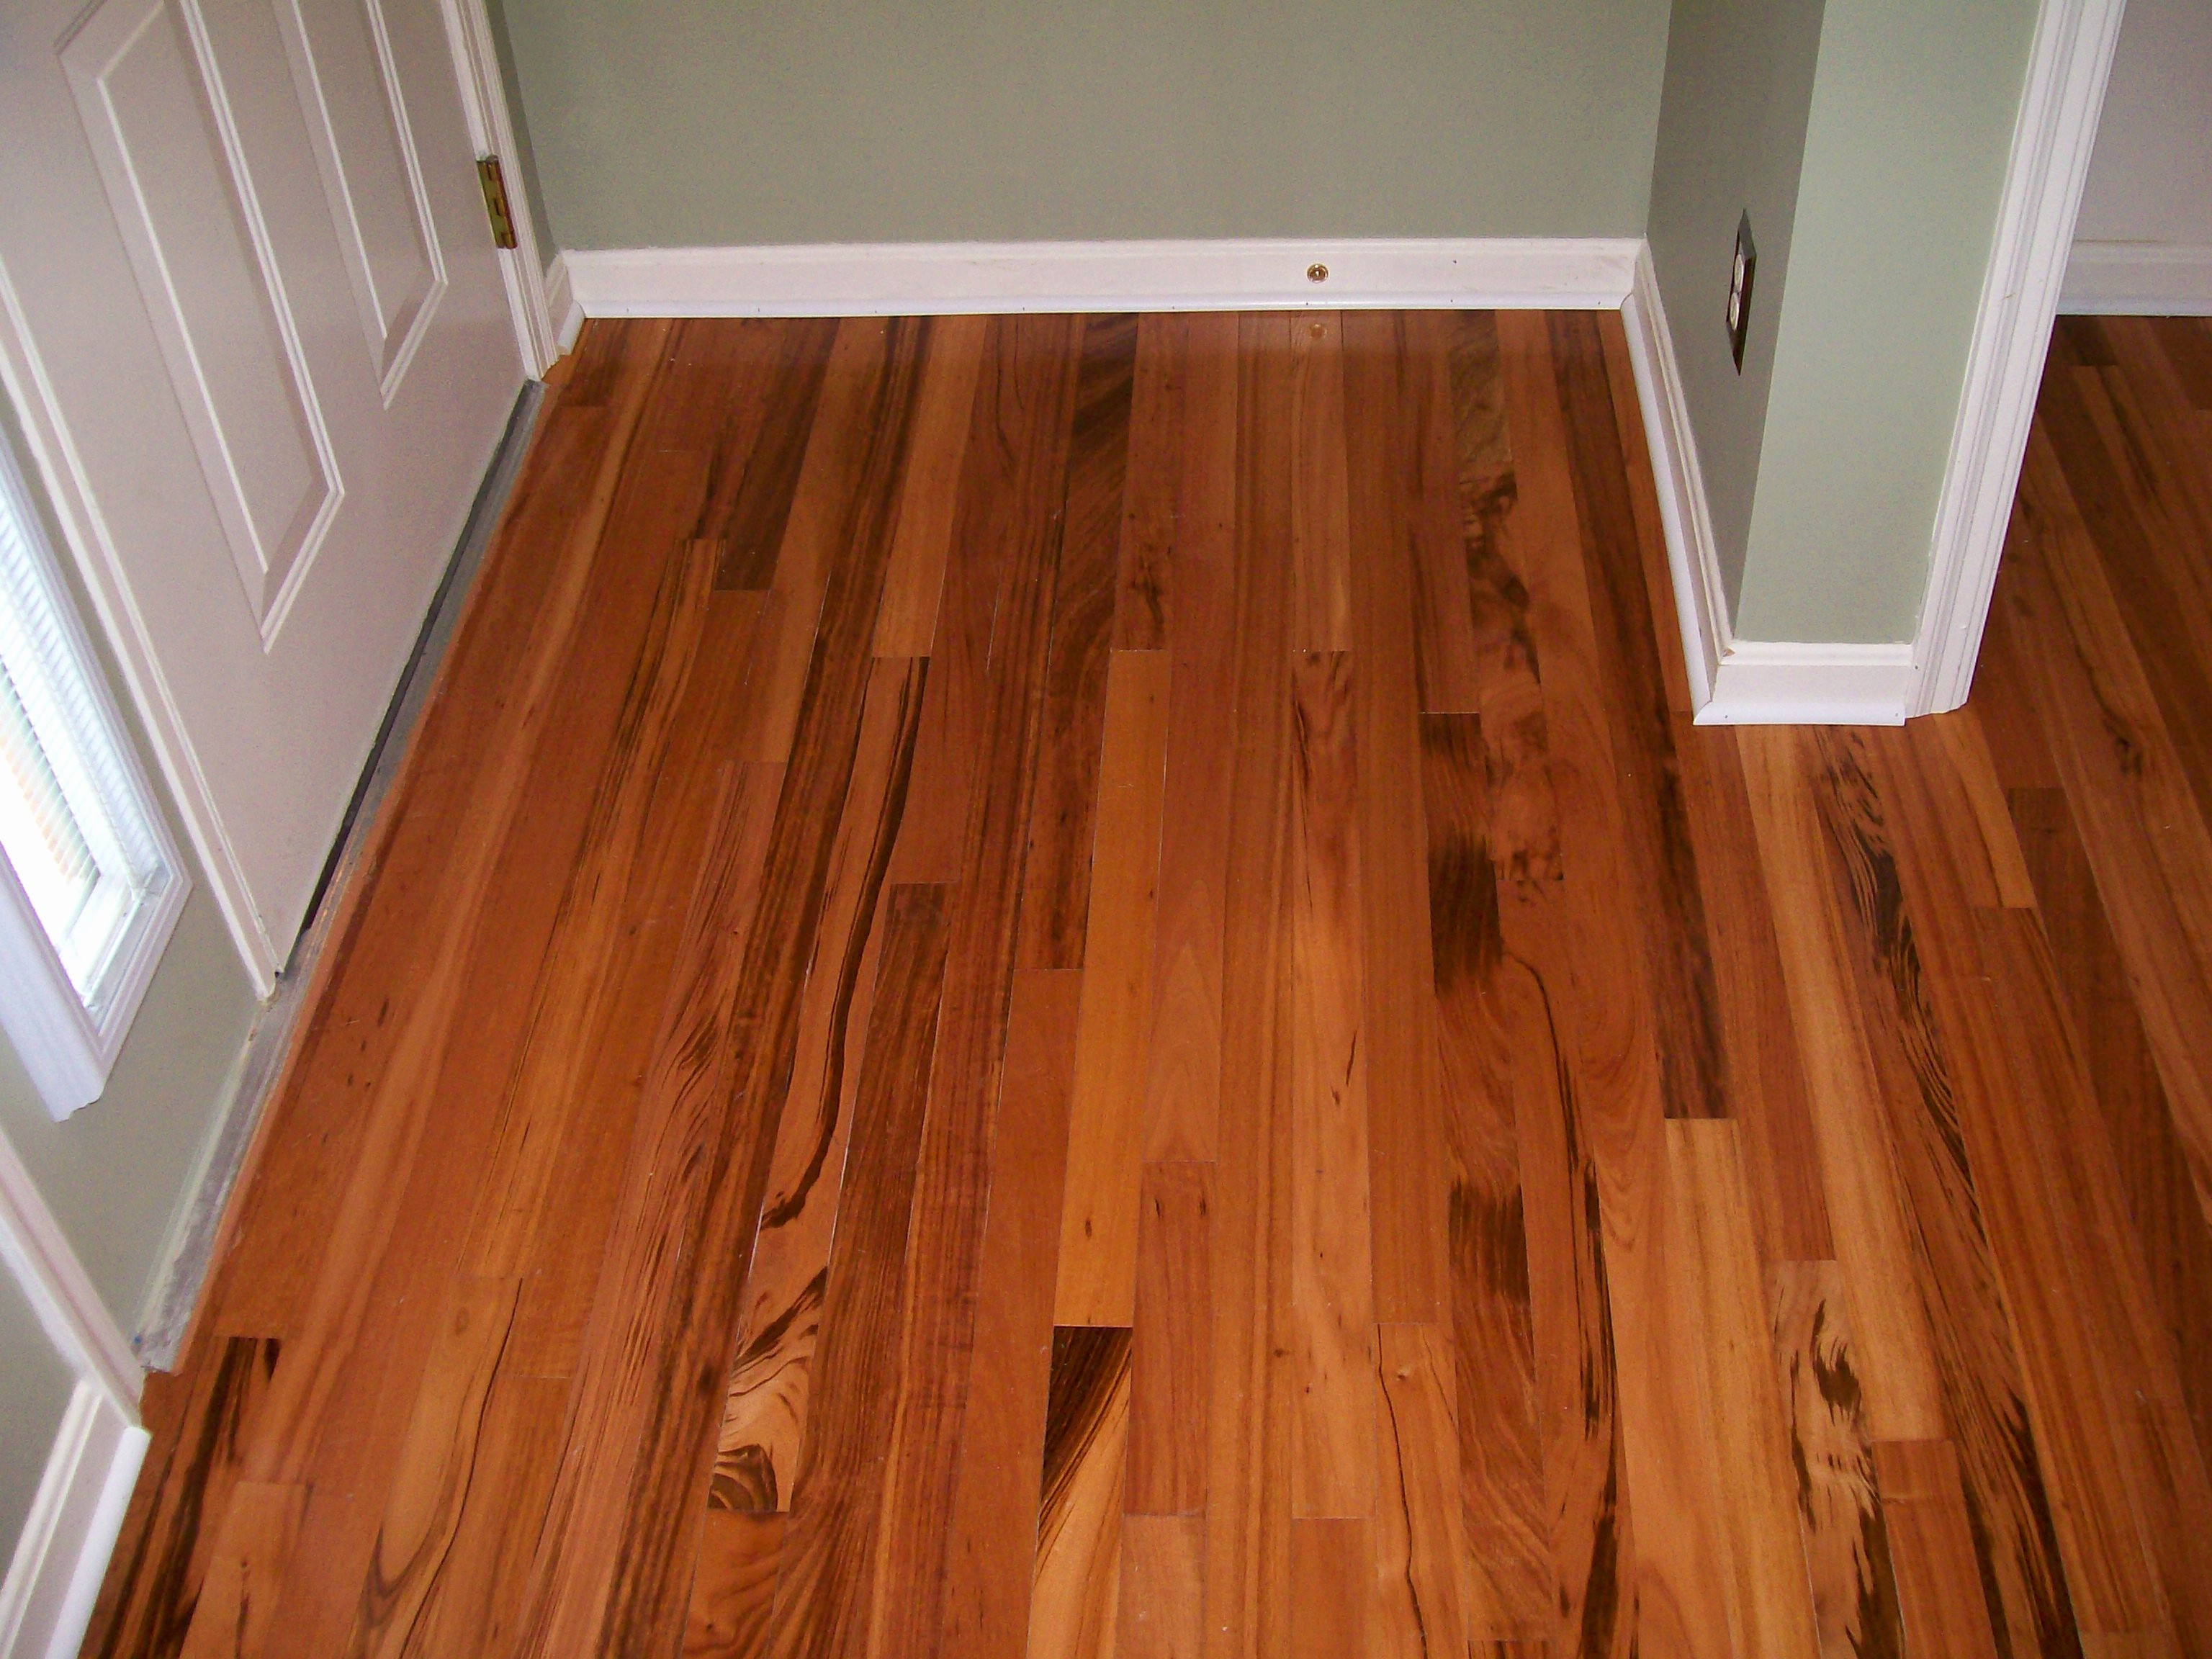 this old house sanding hardwood floors of 17 new cost of hardwood floor installation pics dizpos com throughout cost of hardwood floor installation new 50 fresh estimated cost installing hardwood floors 50 photos of